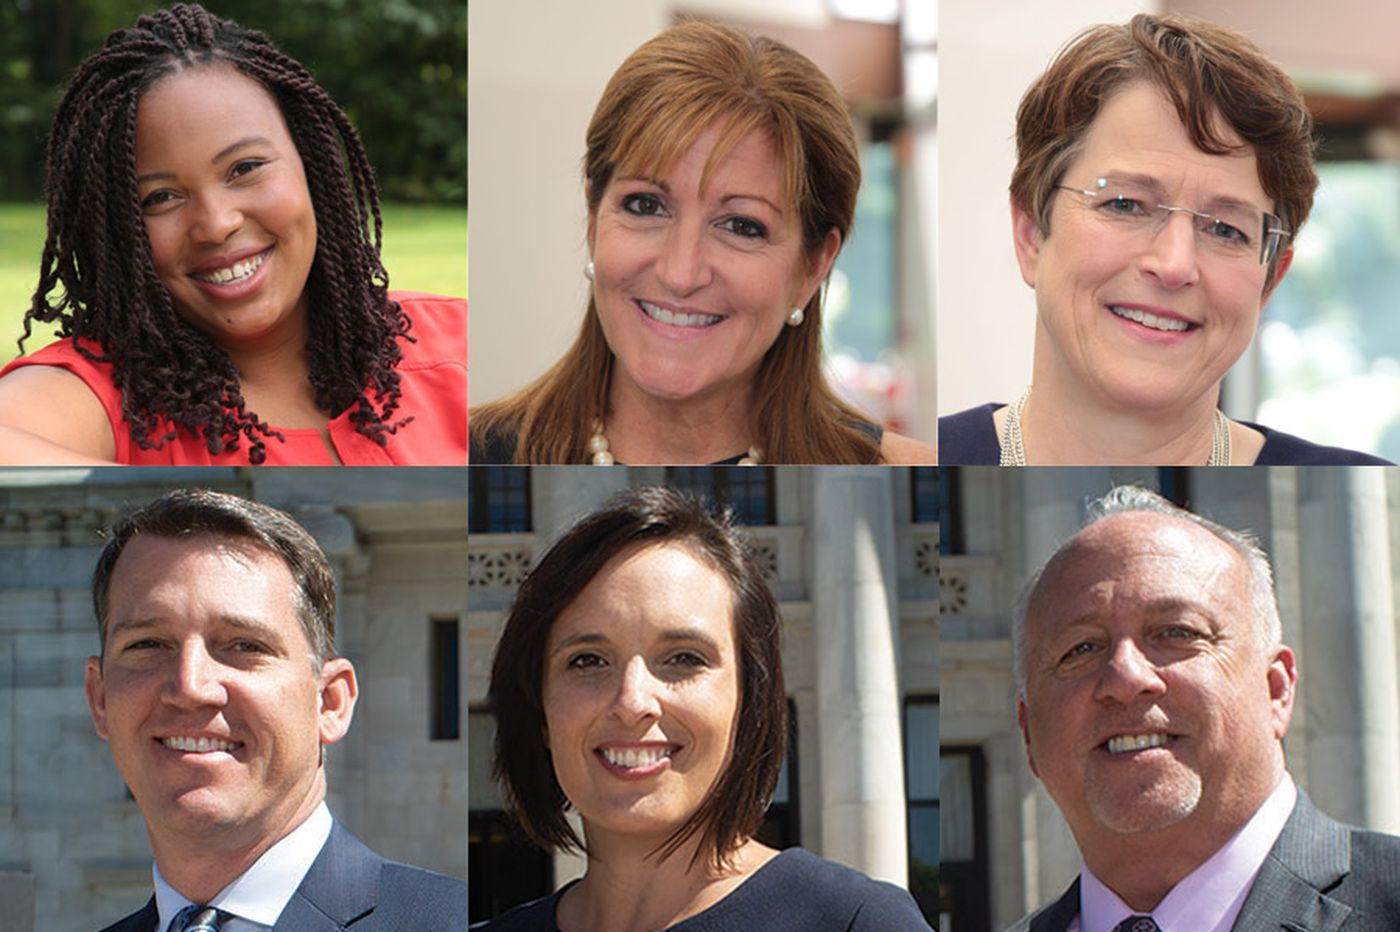 In Delaware County, a historic race looms as Democrats seek their first council majority